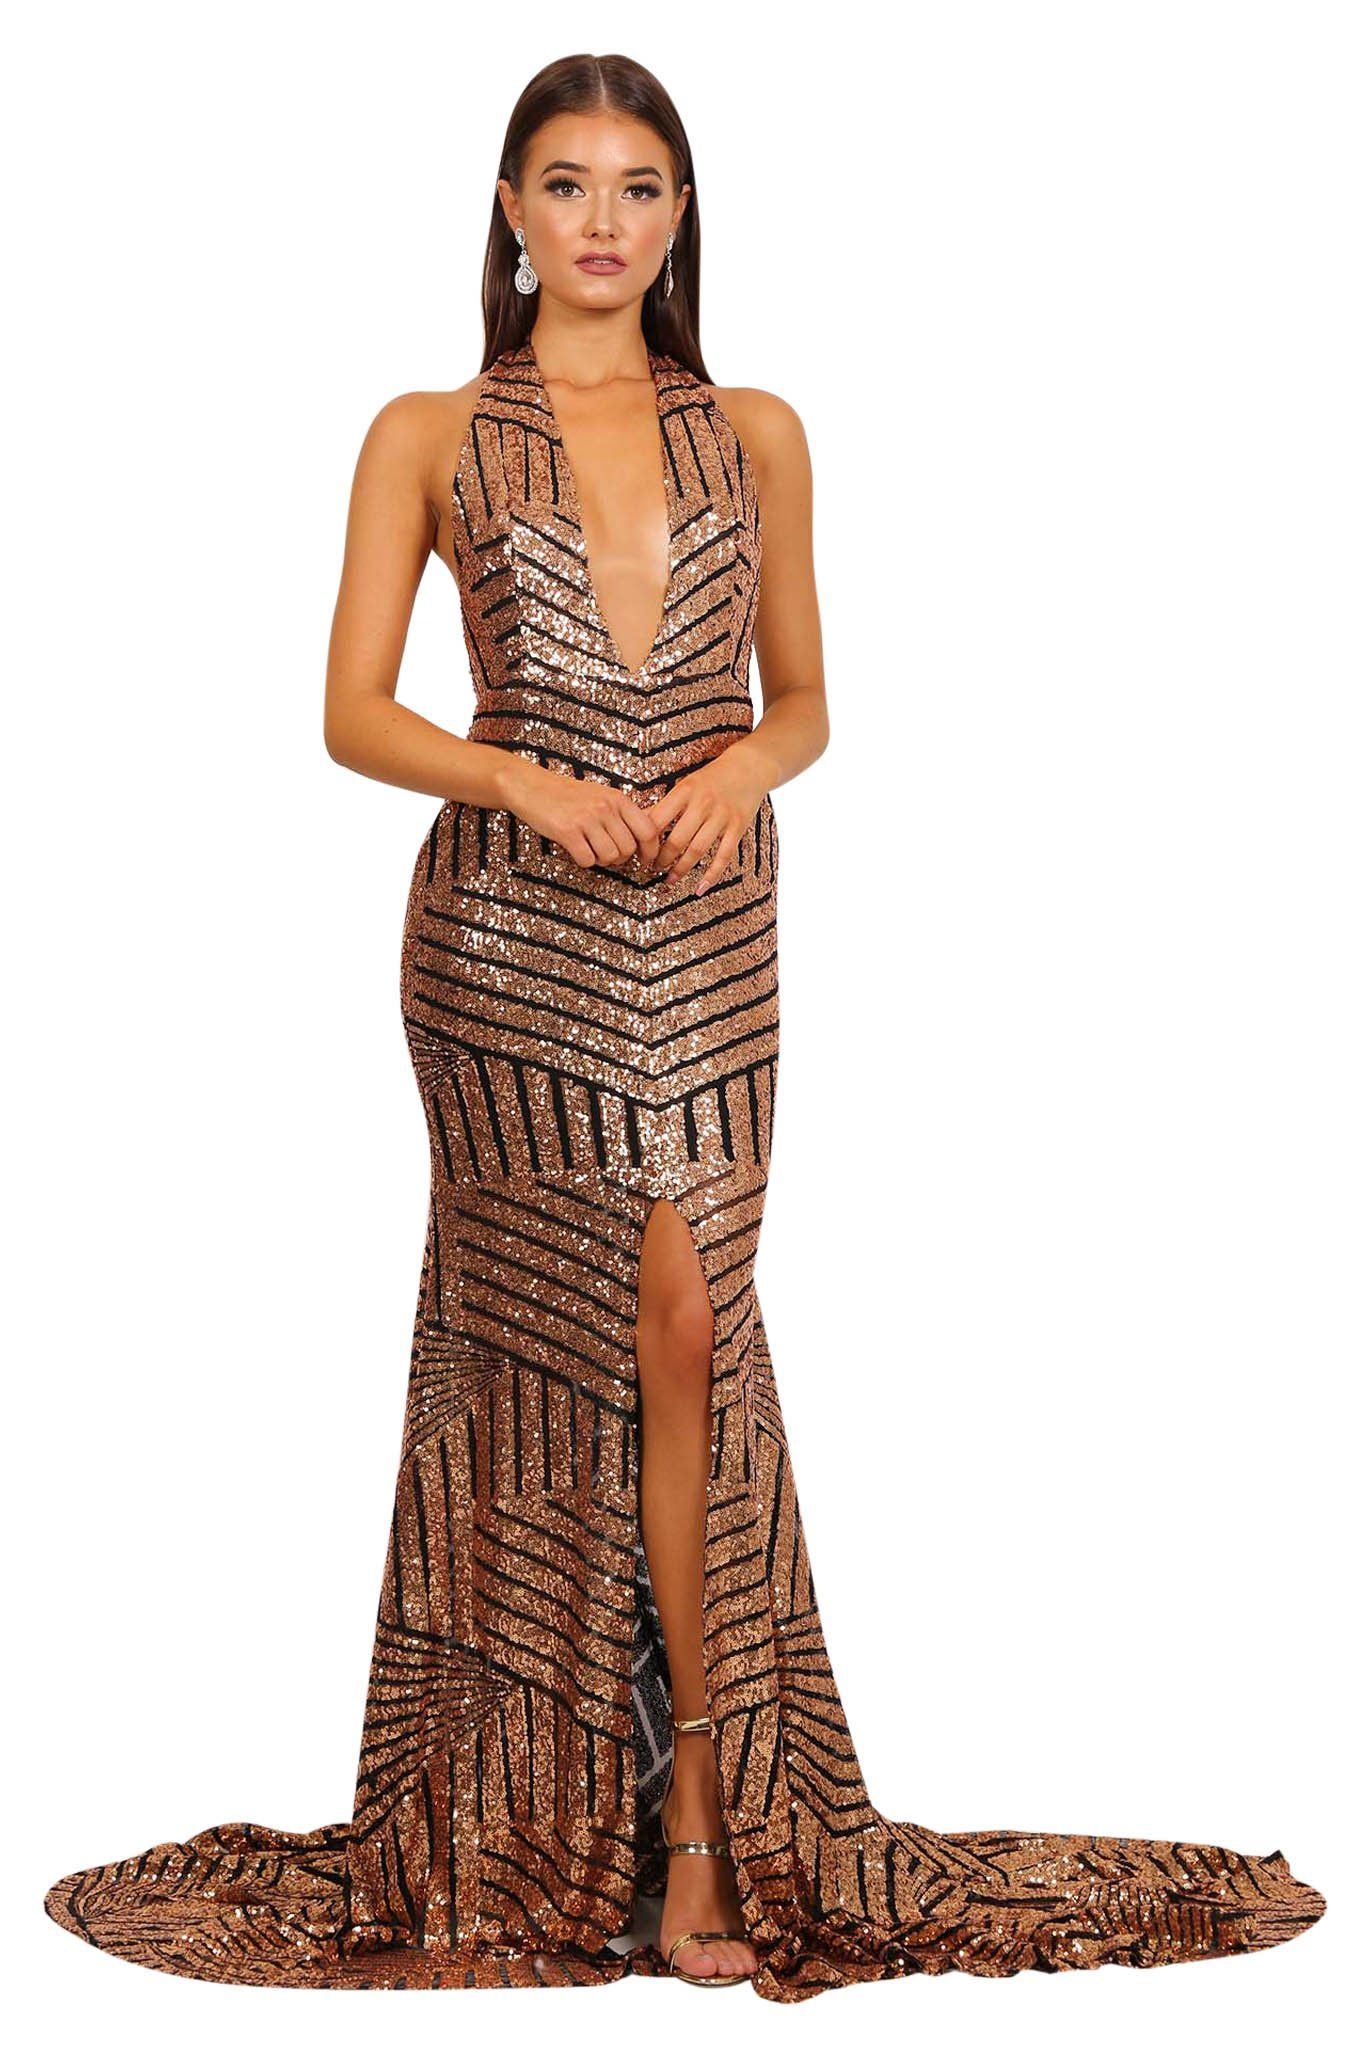 Gold sequins on black mesh formal gown with plunging halter-neck, V shape backless, high center front slit, and a very long train